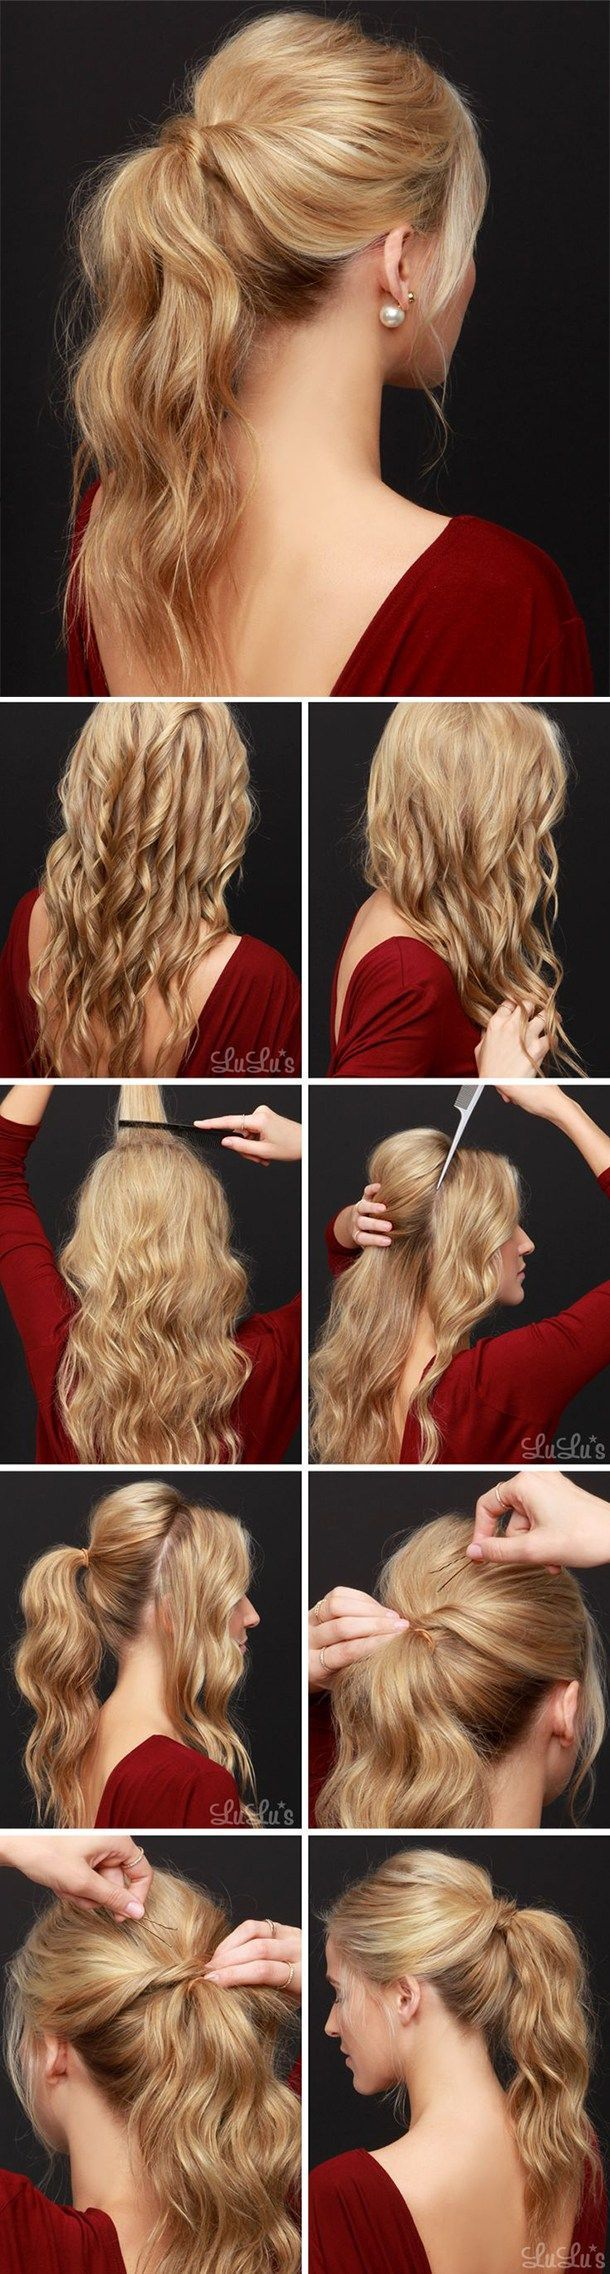 Prom hair styles groovy ponytails prom hair styles prom hair and